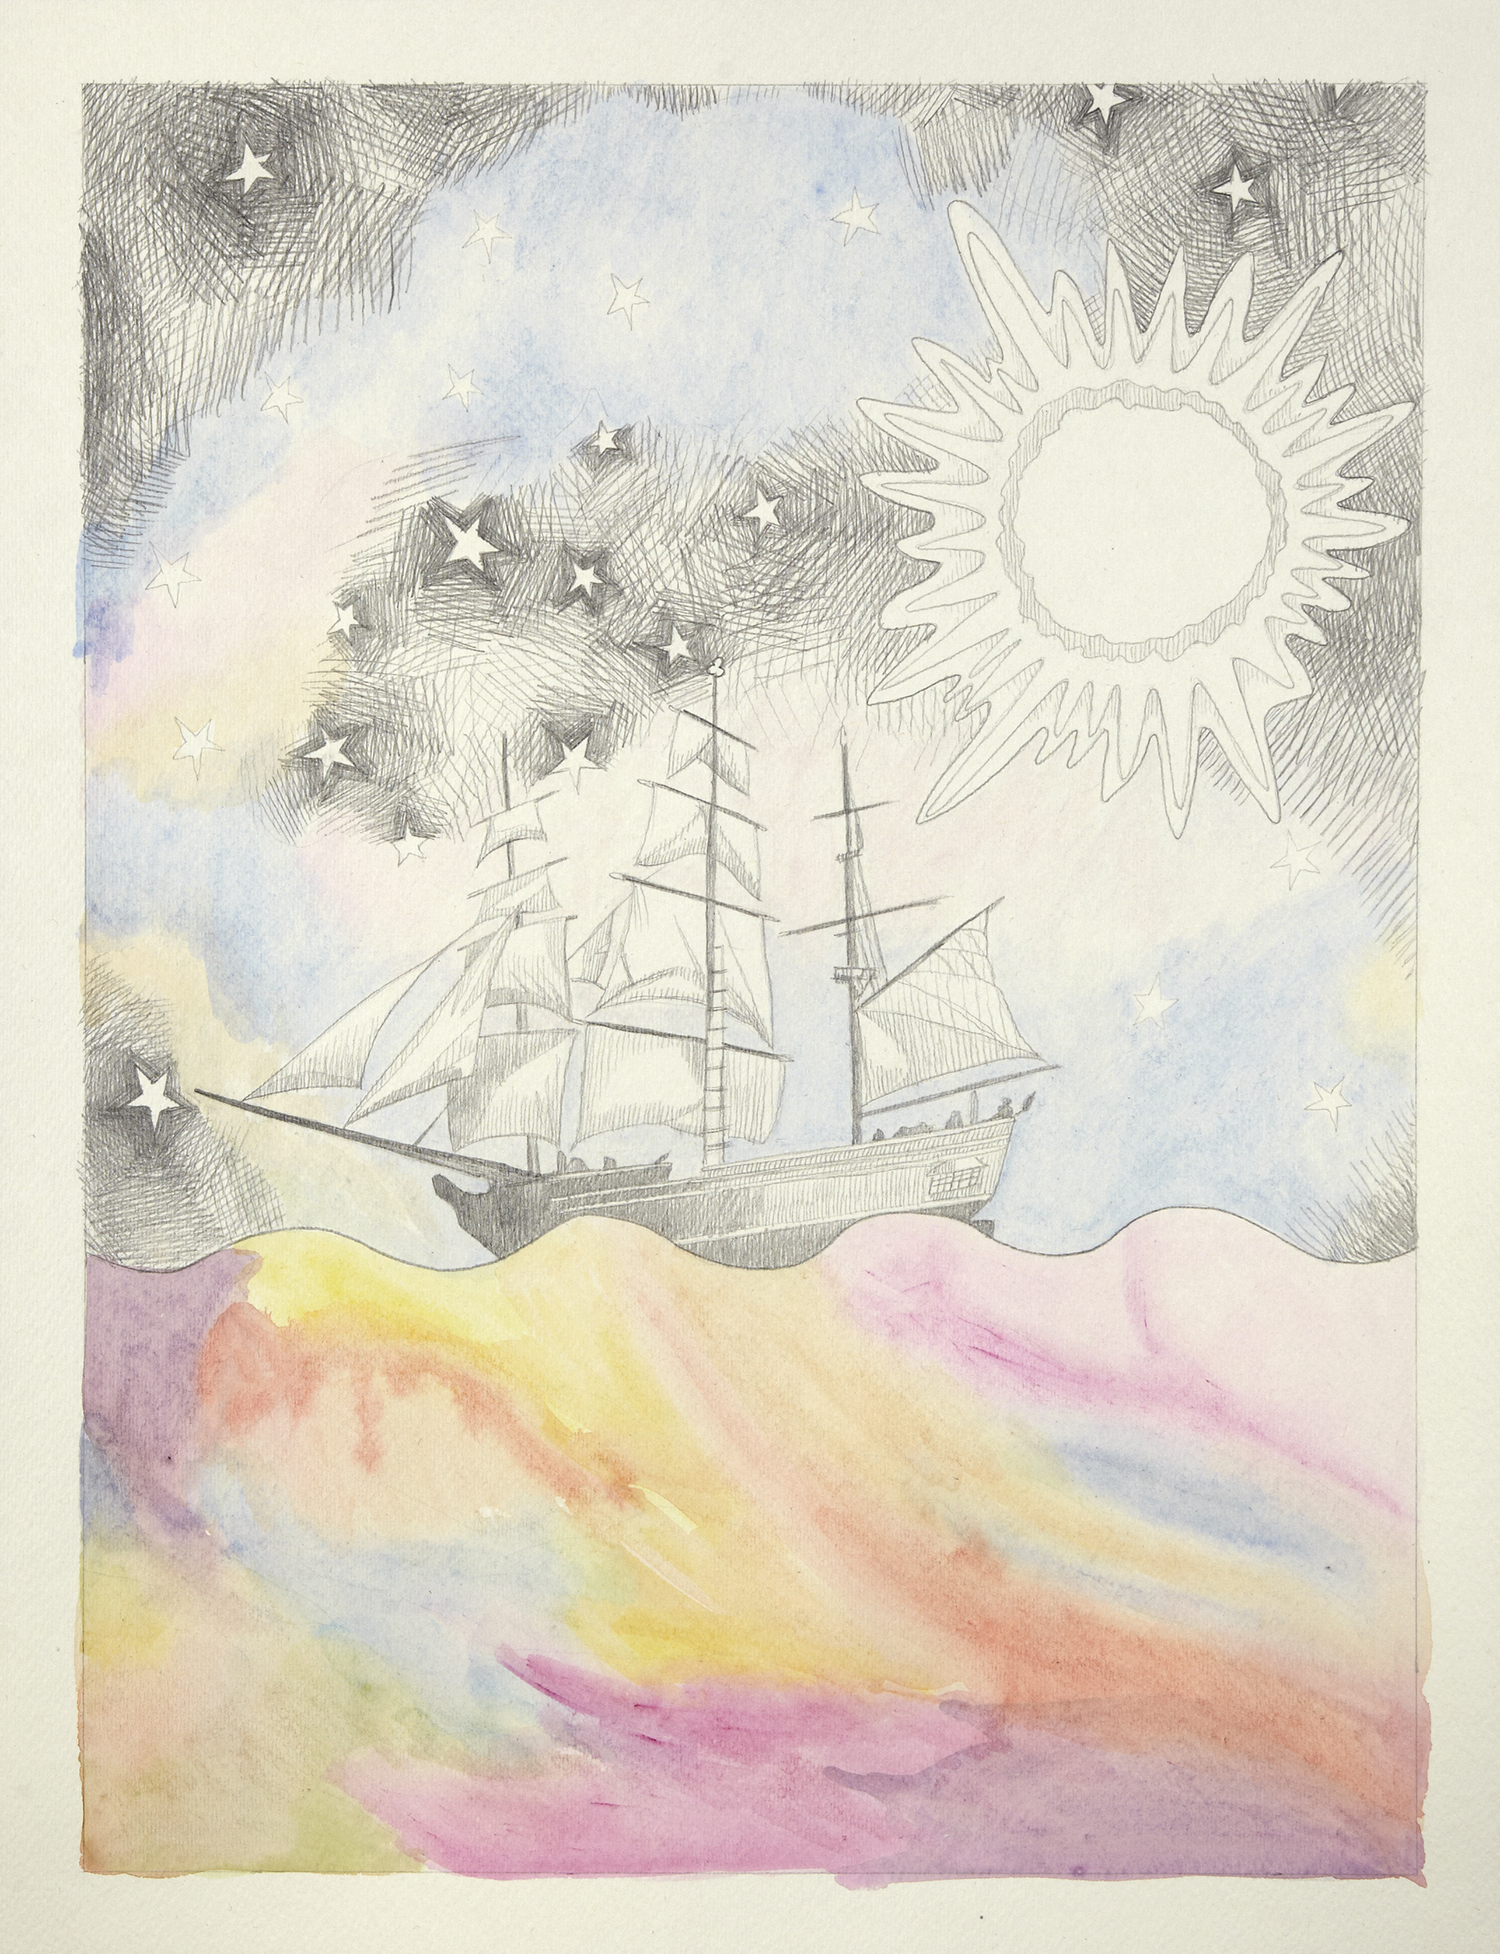 Boat and Bright #2, 2012, Watercolour and pencil on paper, 30.0 x 40.0 cm, Photo: Sam Scoufos